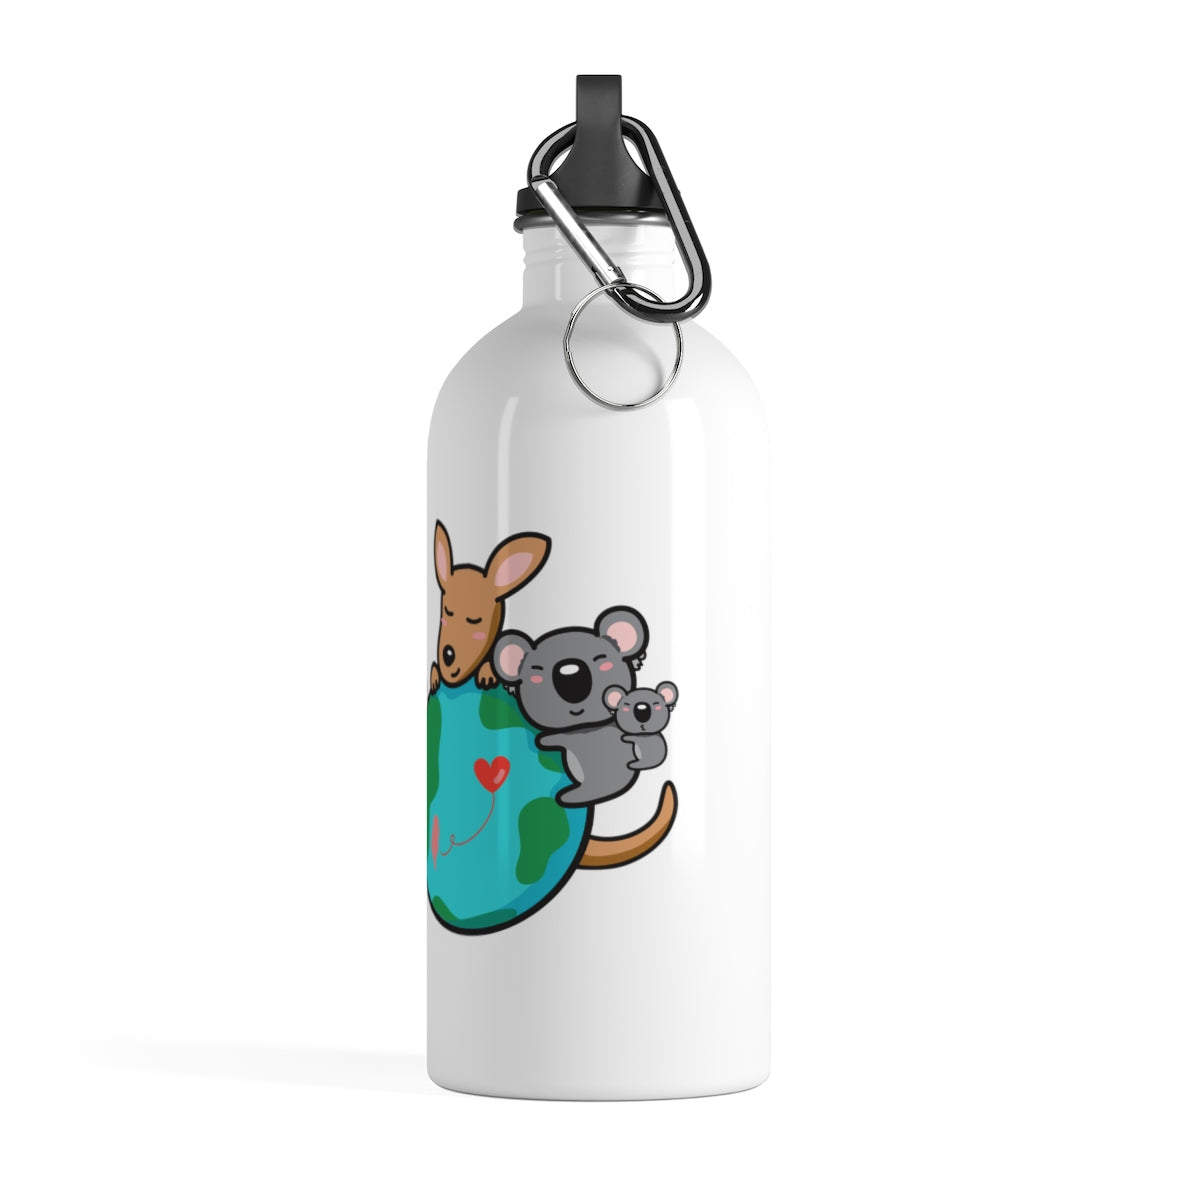 Stainless Steel Water Bottle - NEVER GIVE UP!